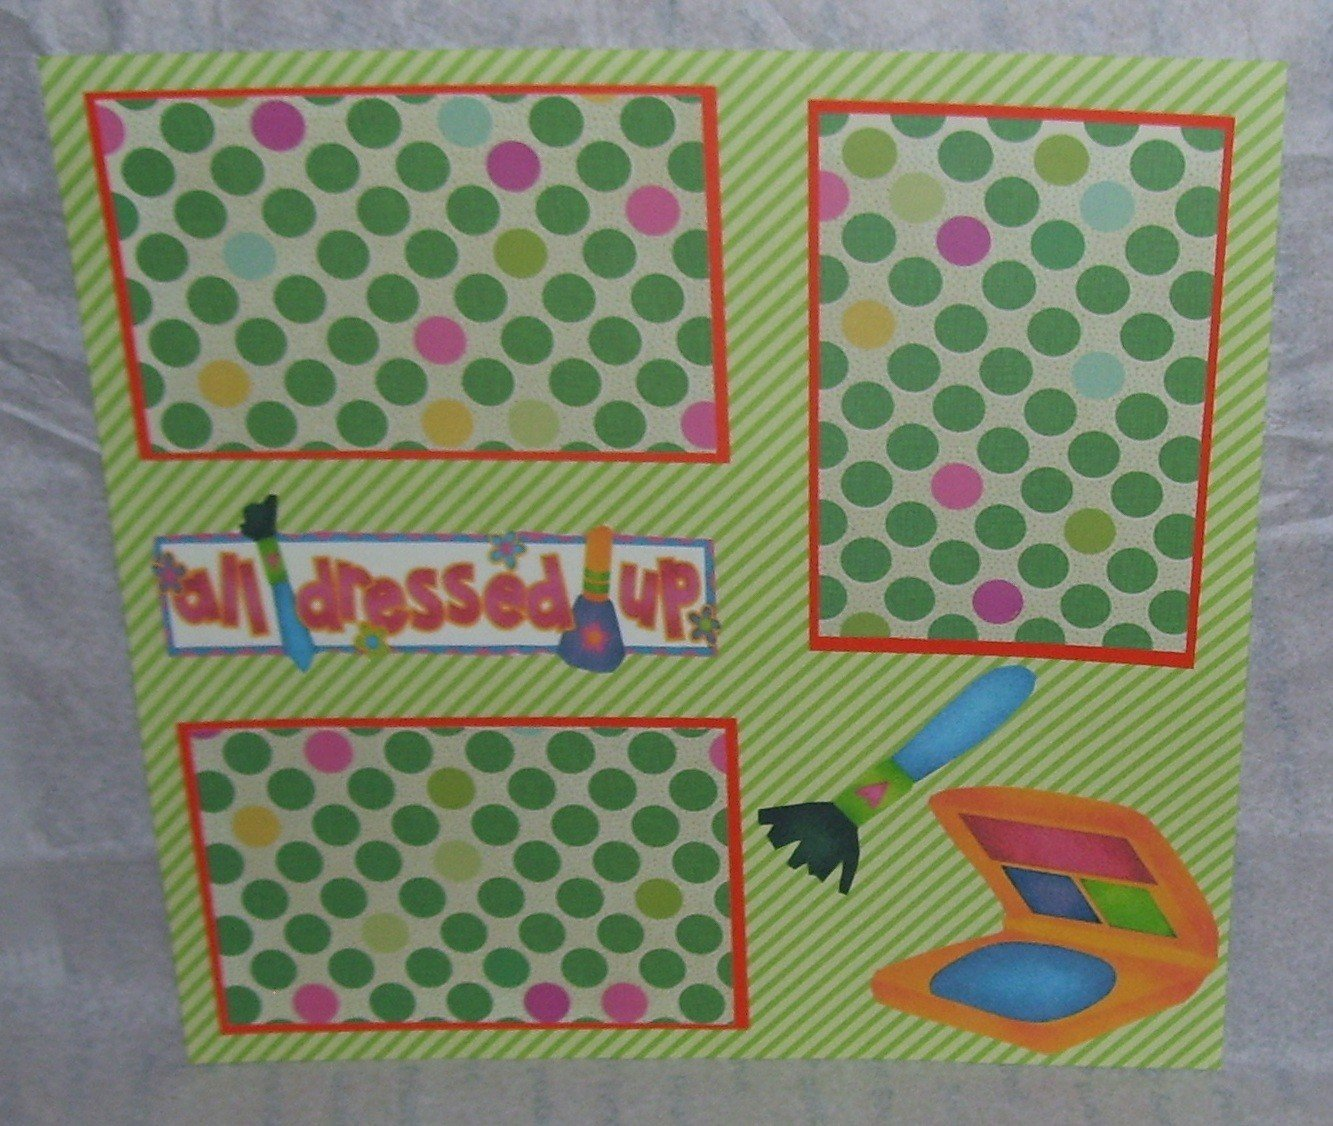 """All Dressed Up Makeup a""-Premade Scrapbook Page 12x12"